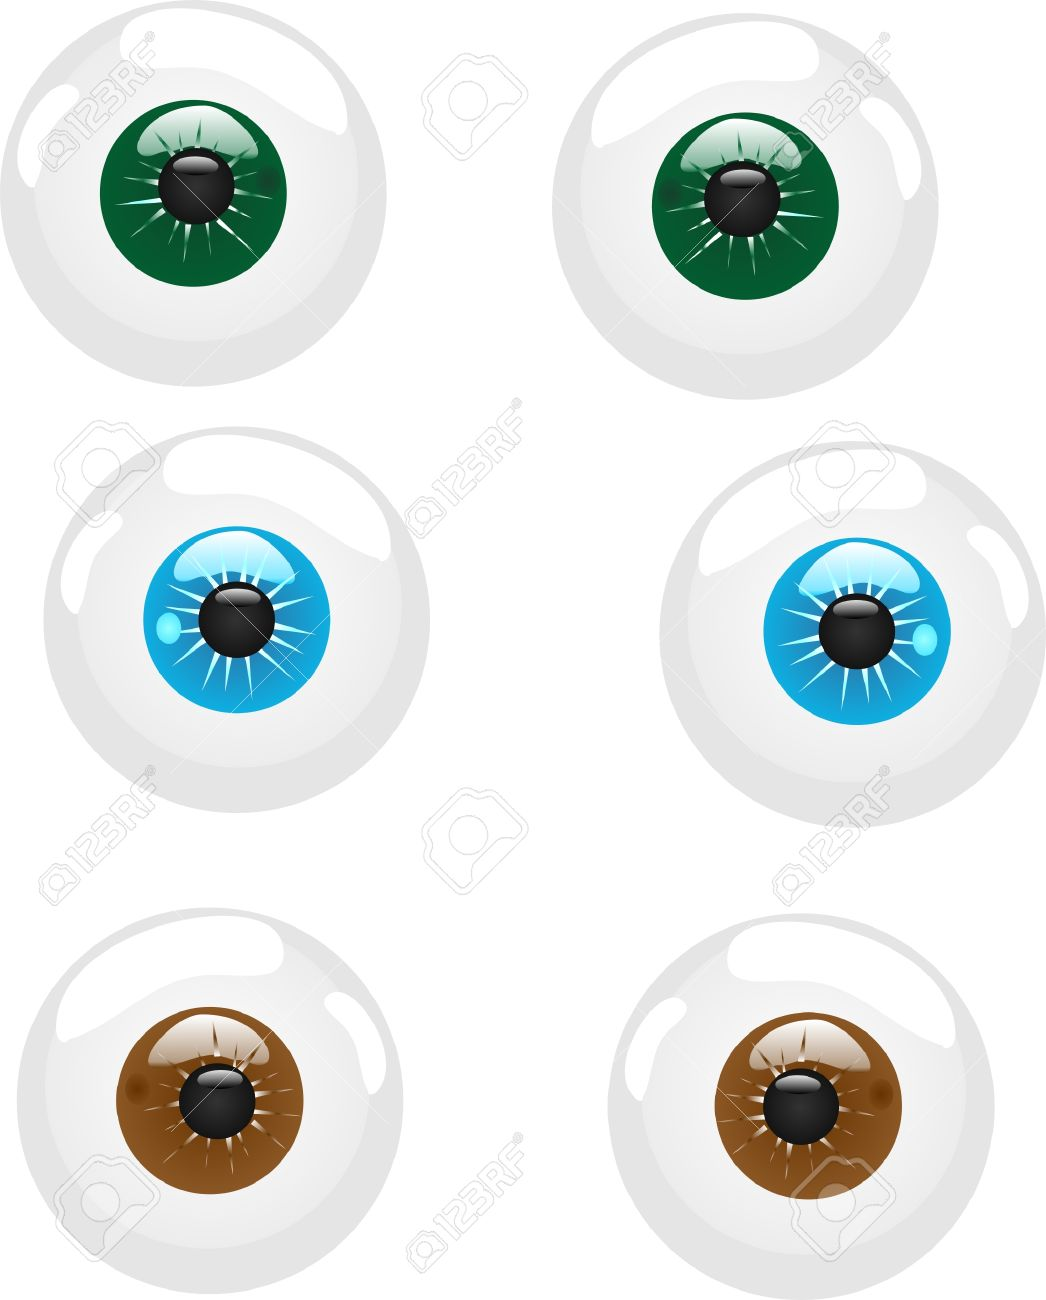 3 Sets Of Eyeballs With Different Colored Iris, Can Be For Icons.